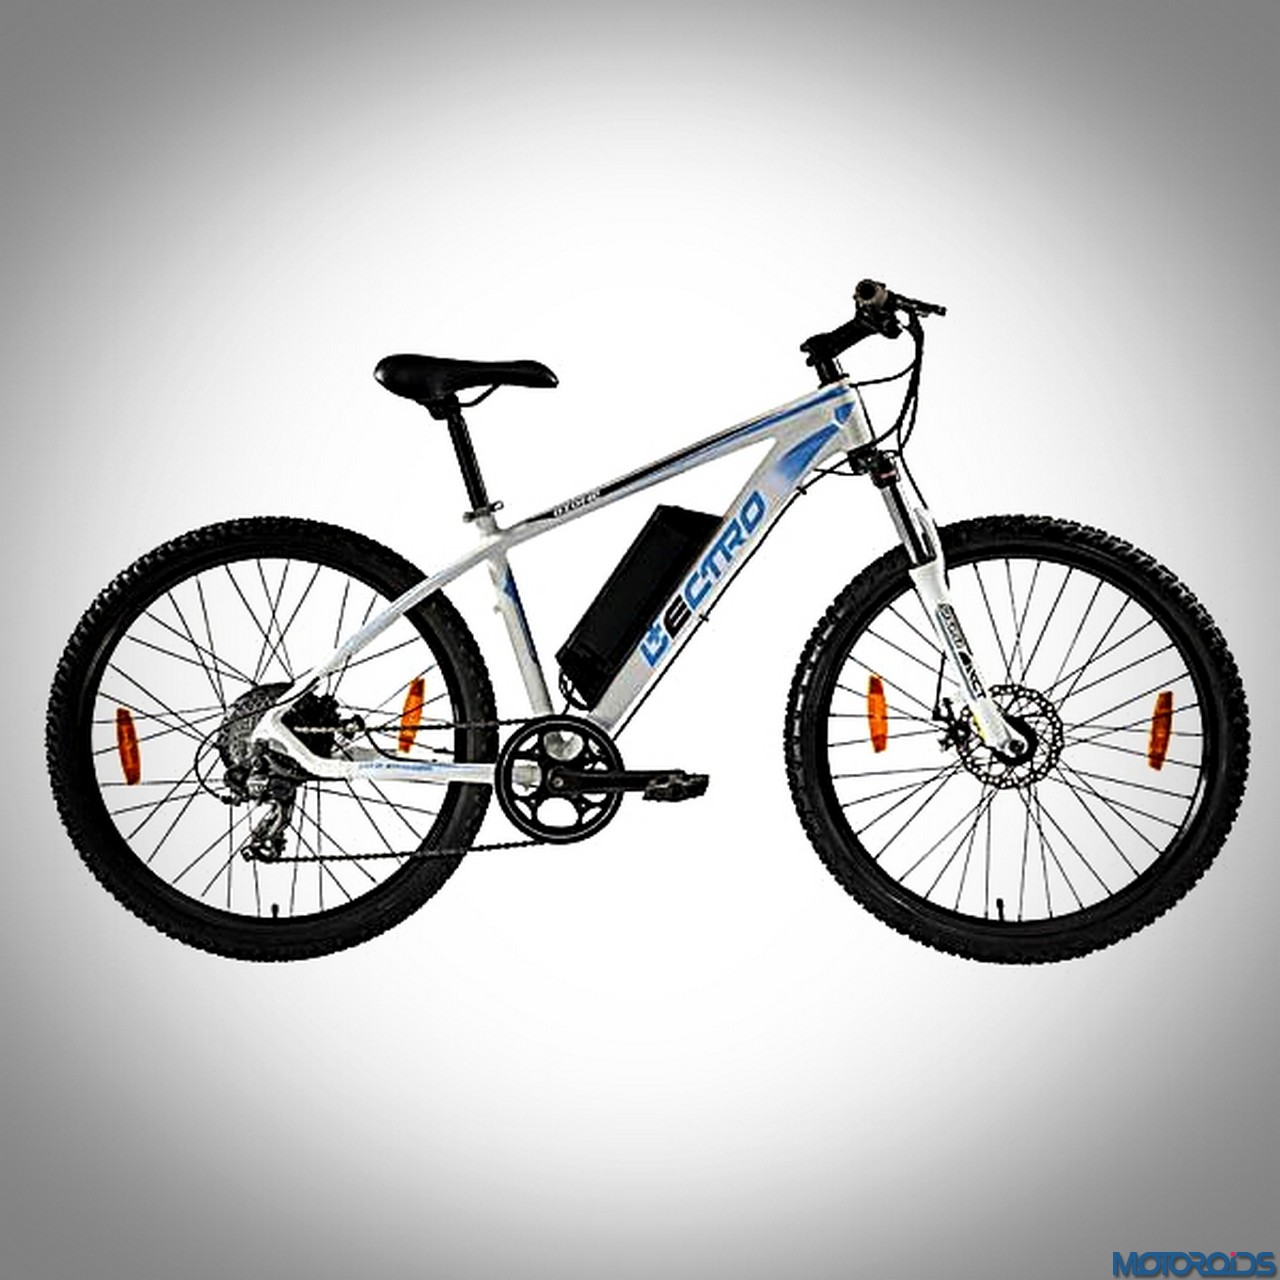 hero cycles Results 1 - 24 of 128 hero cycles: shop from a wide range of hero cycles online at best prices in india check out price and features of hero cycles at amazonin no cost emi offers, cod and great discounts available on eligible purchases.